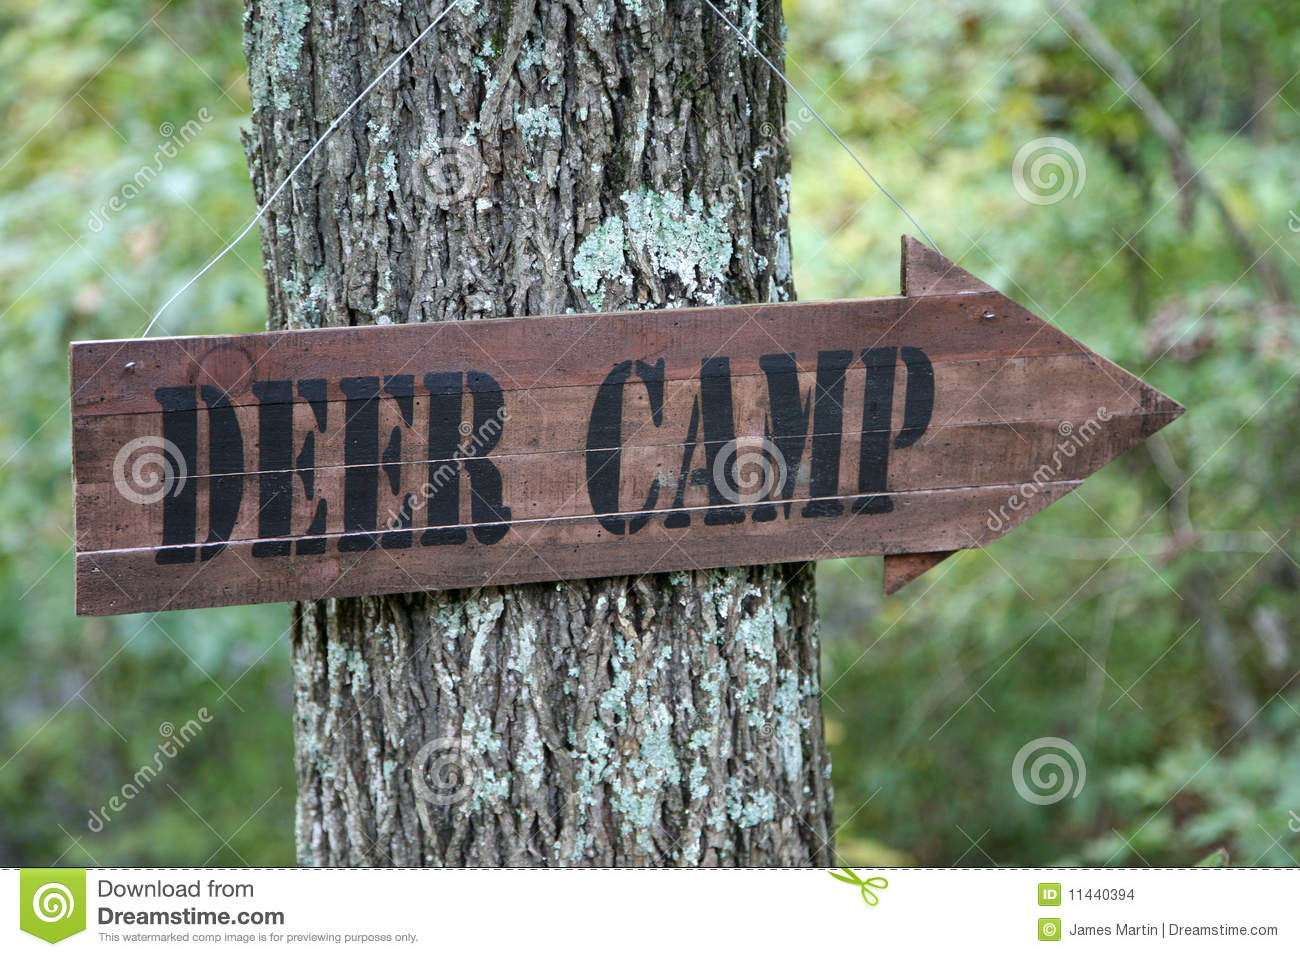 Deer camp sign stock photo. Image of directional, sport.